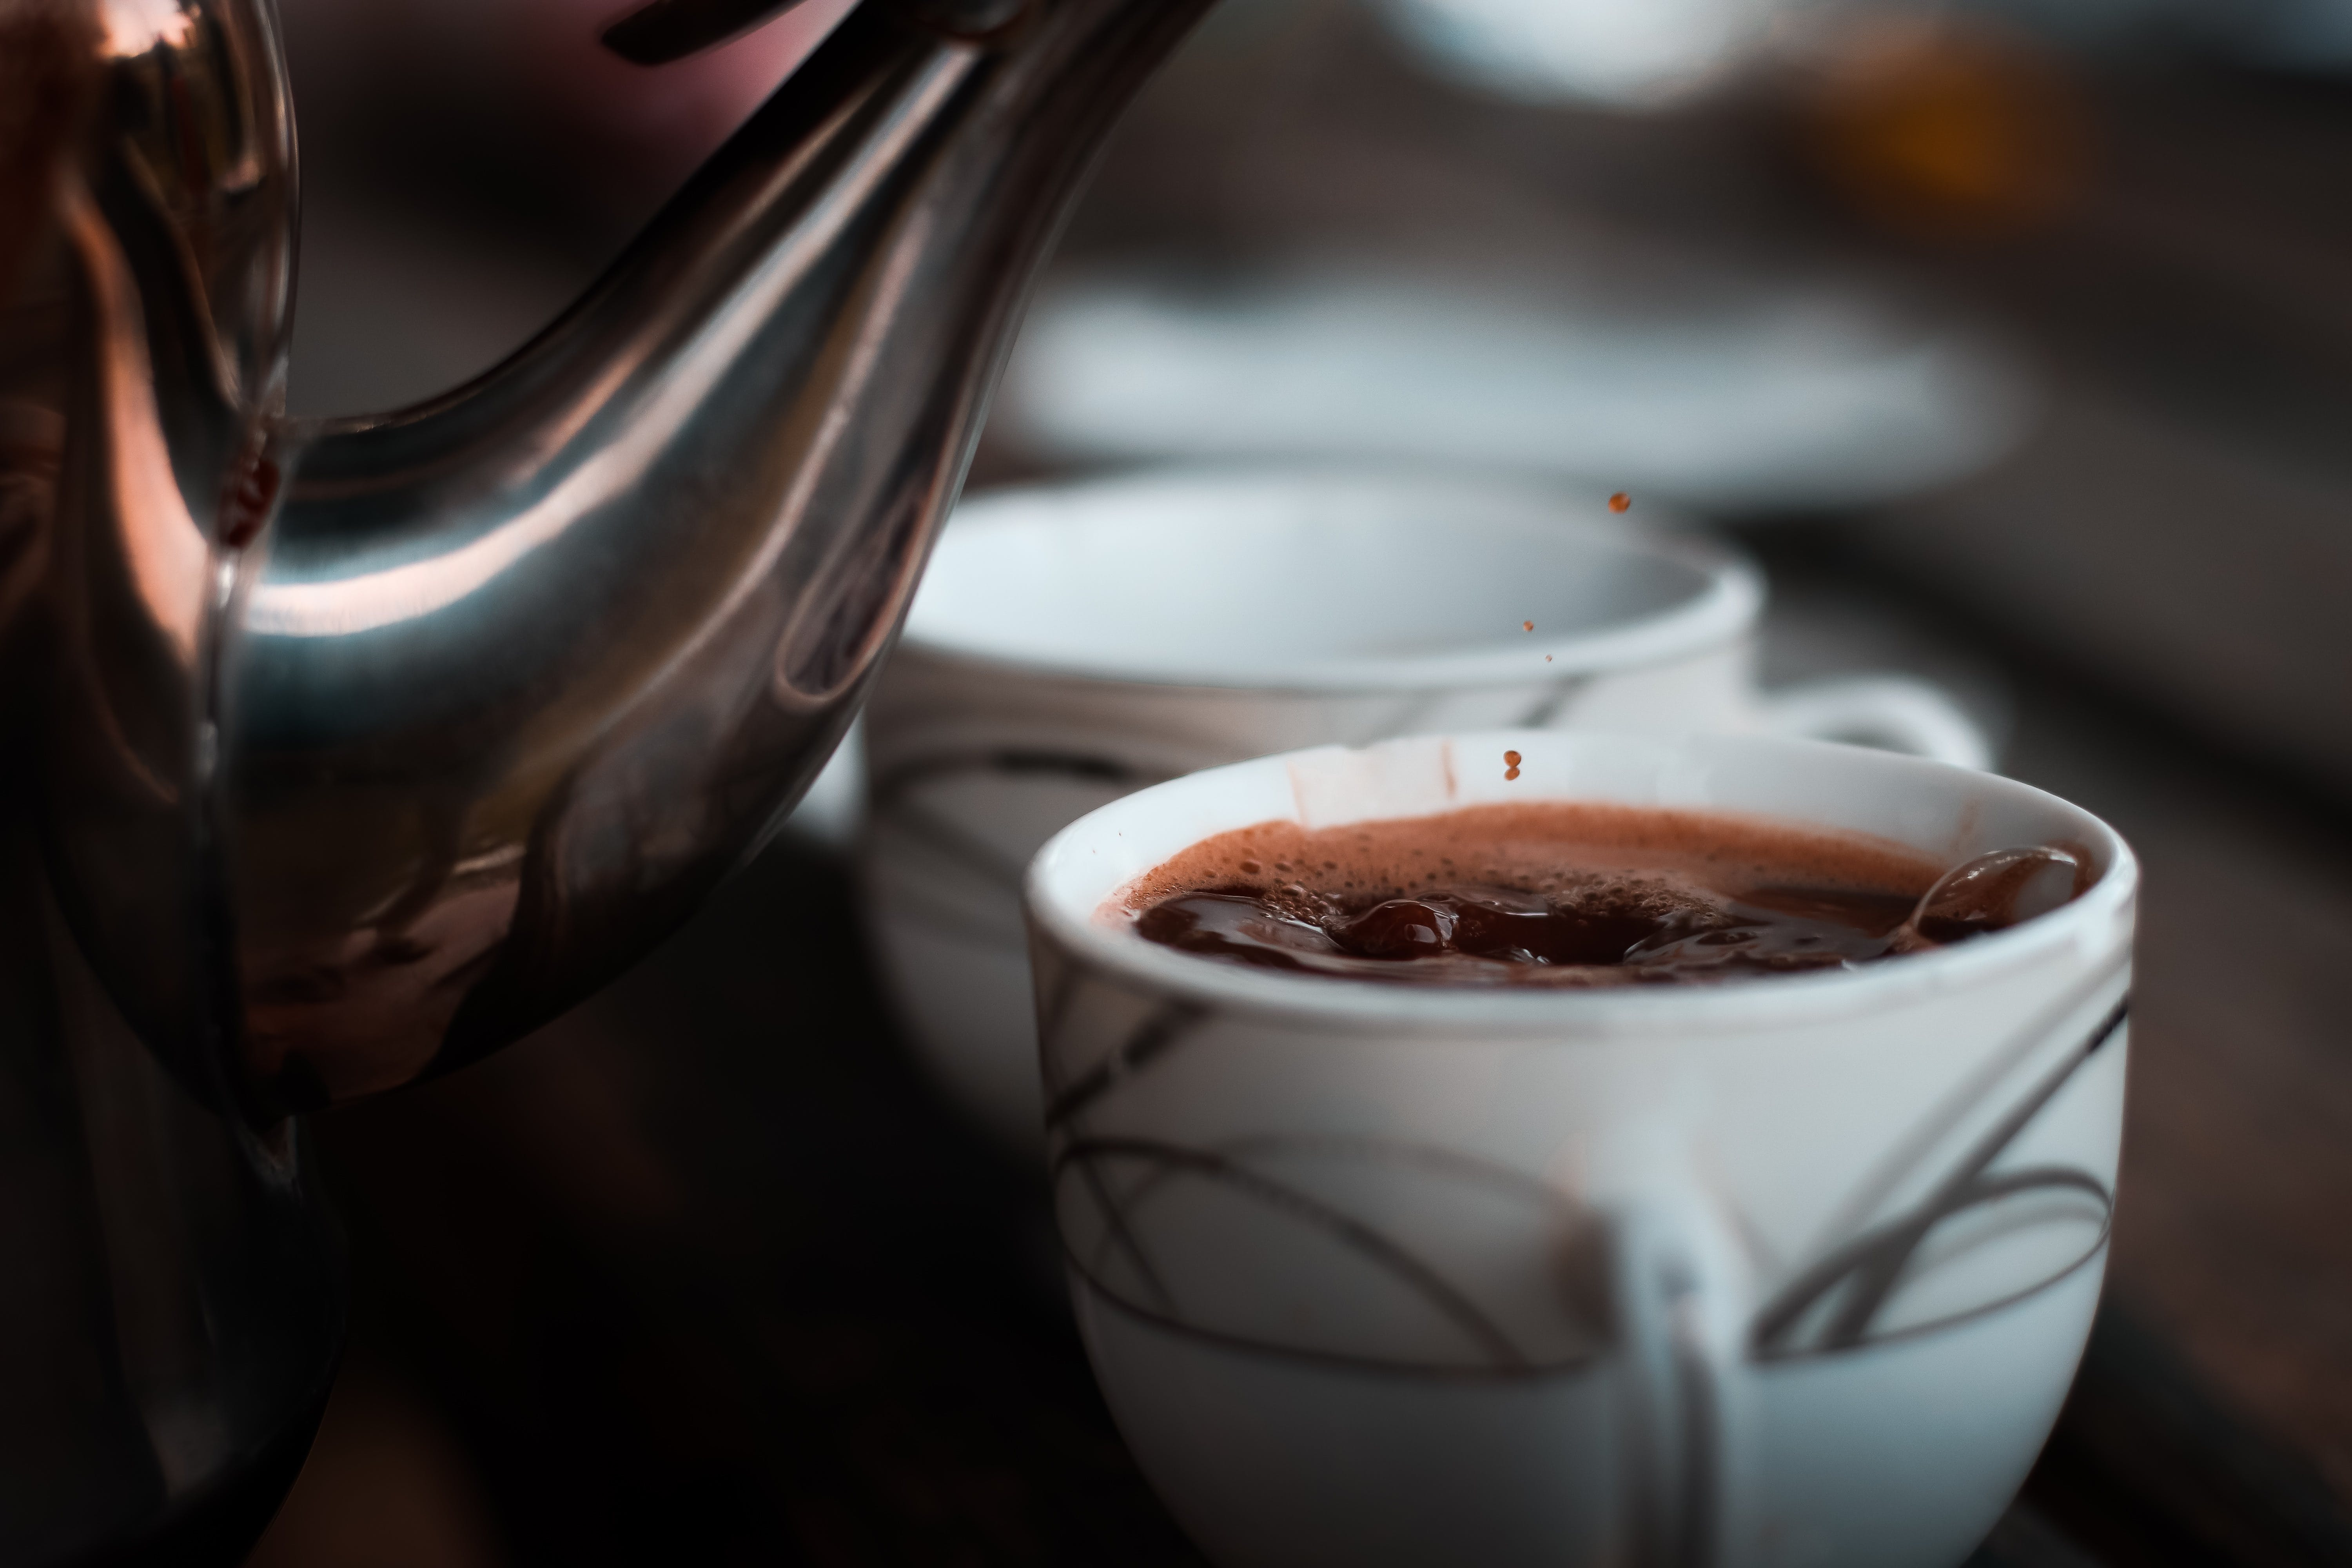 Selective Focus Photography of Teacup With Coffee